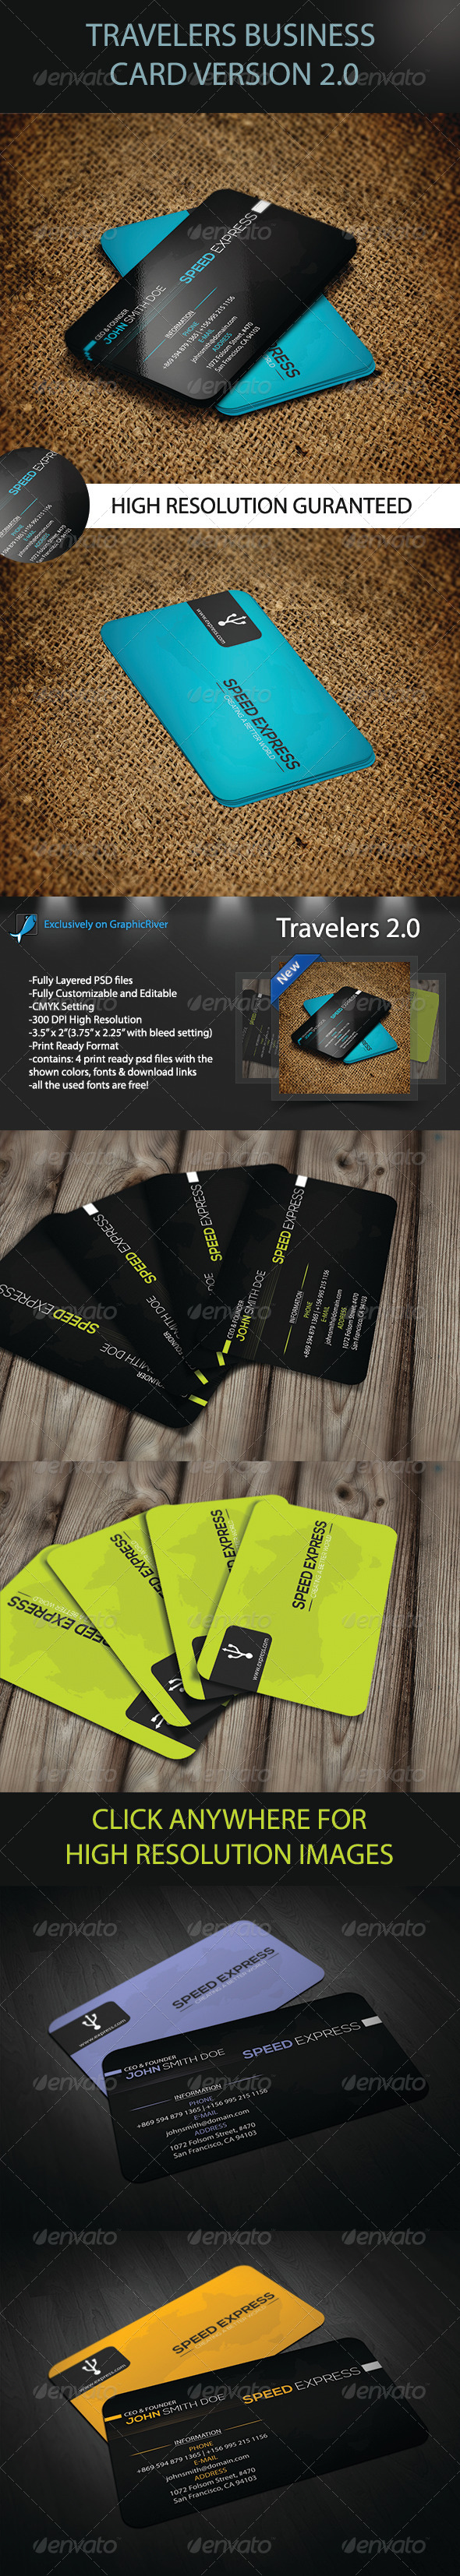 Travelers Business Card Version 2.0 - Print Templates